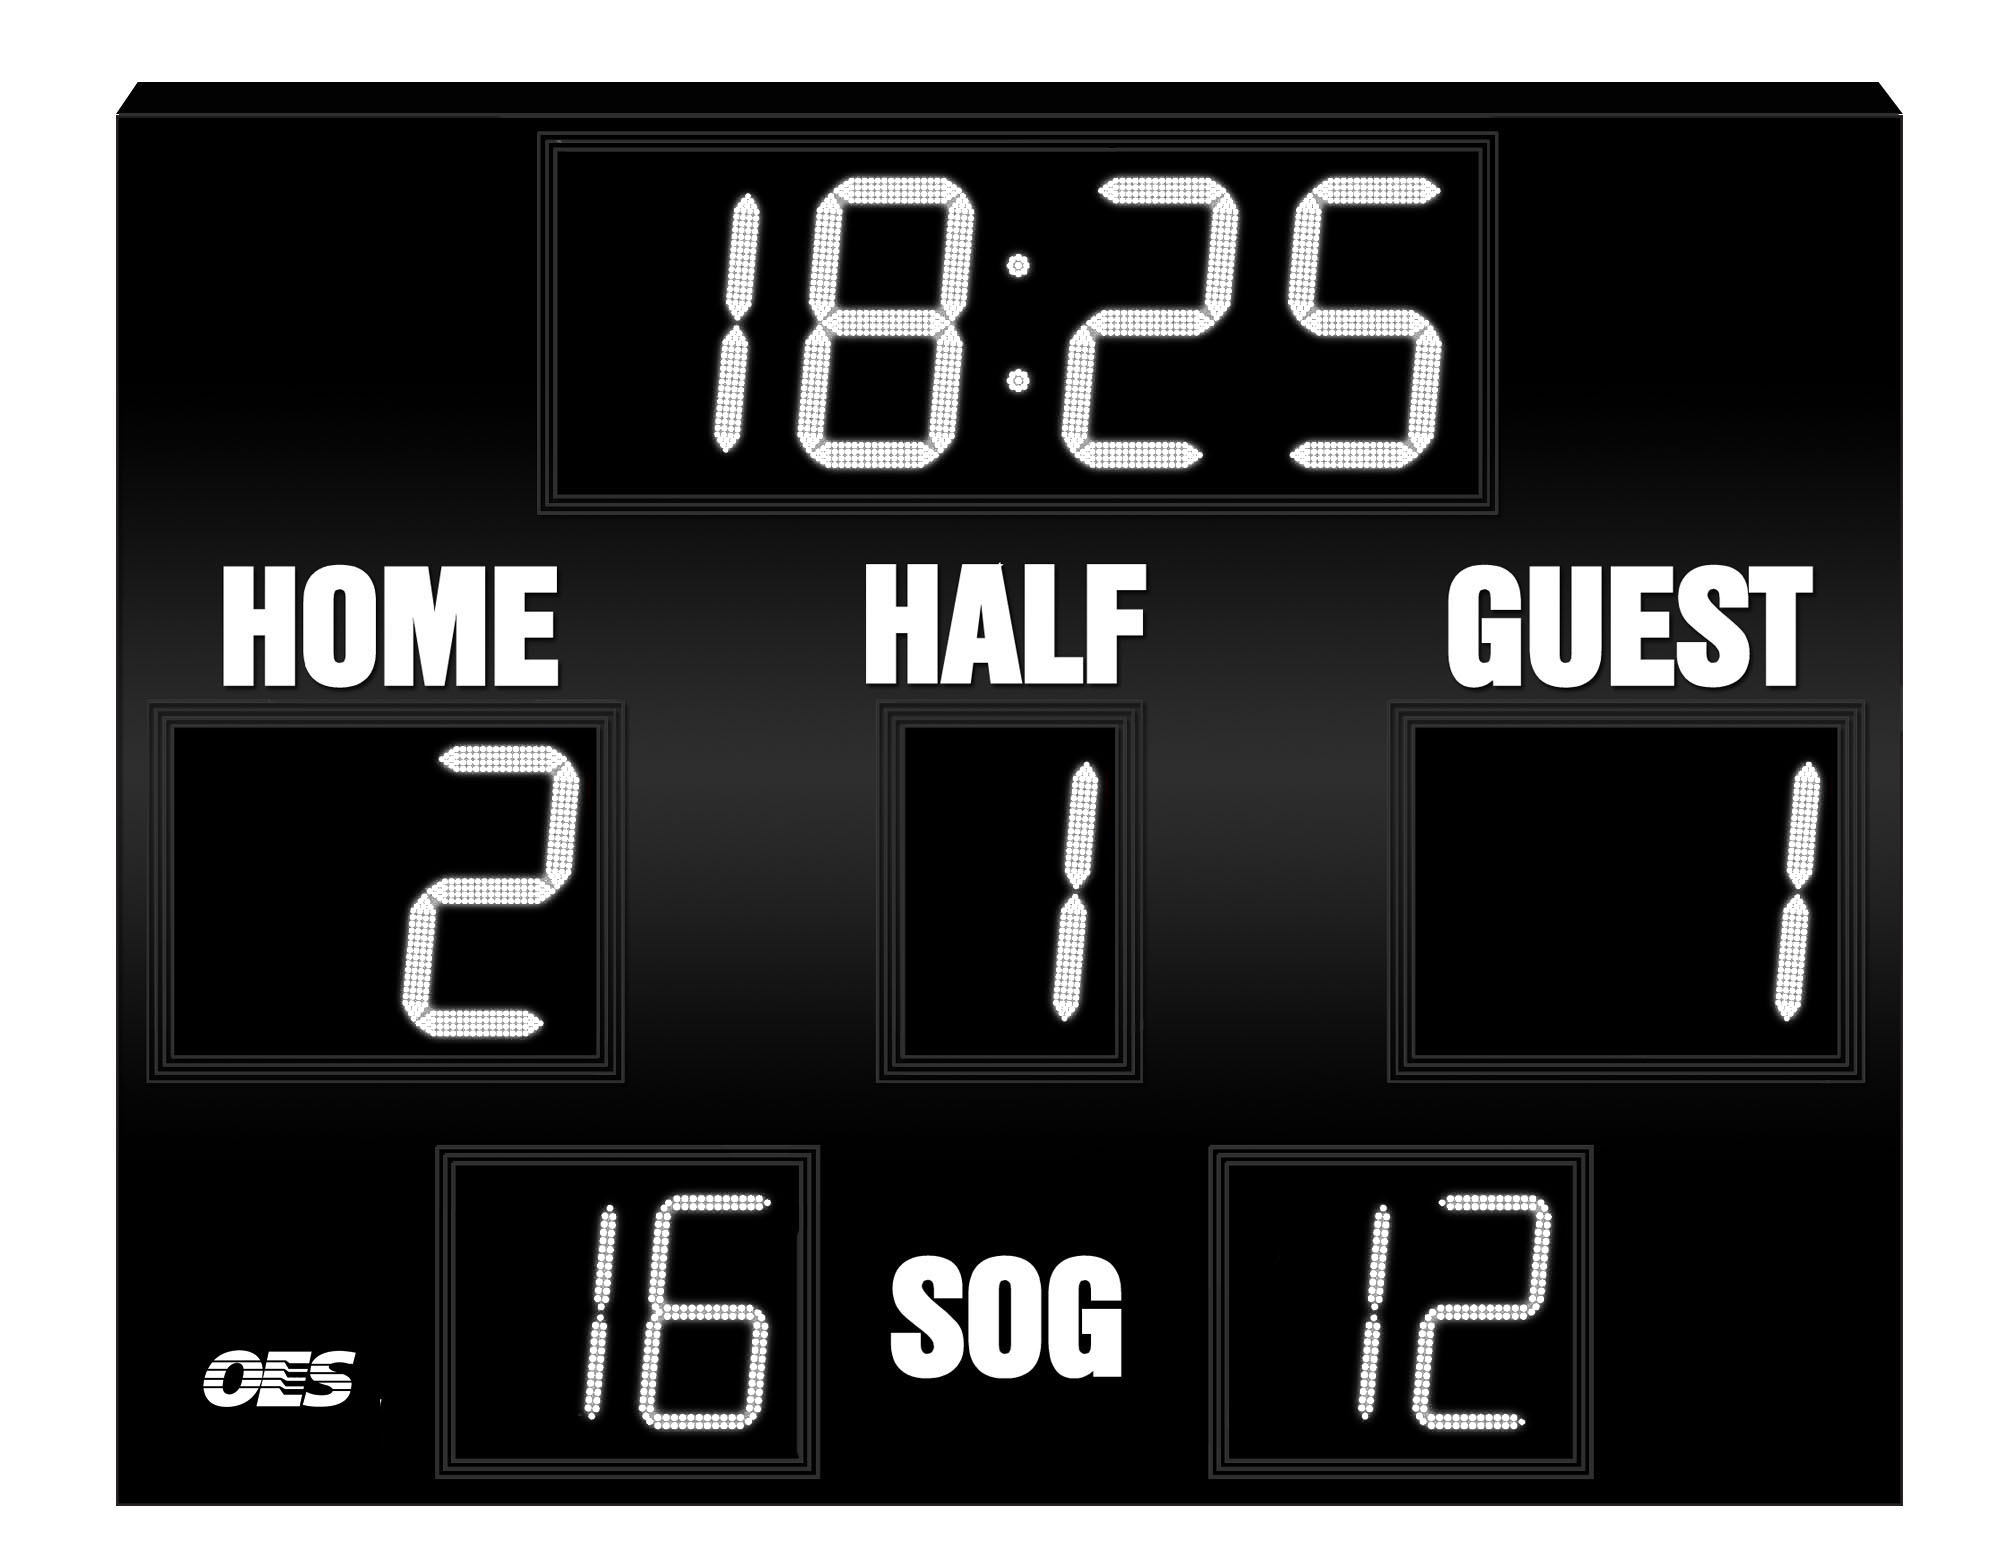 scoreboard template for powerpoint - scoreboard clipart clipground